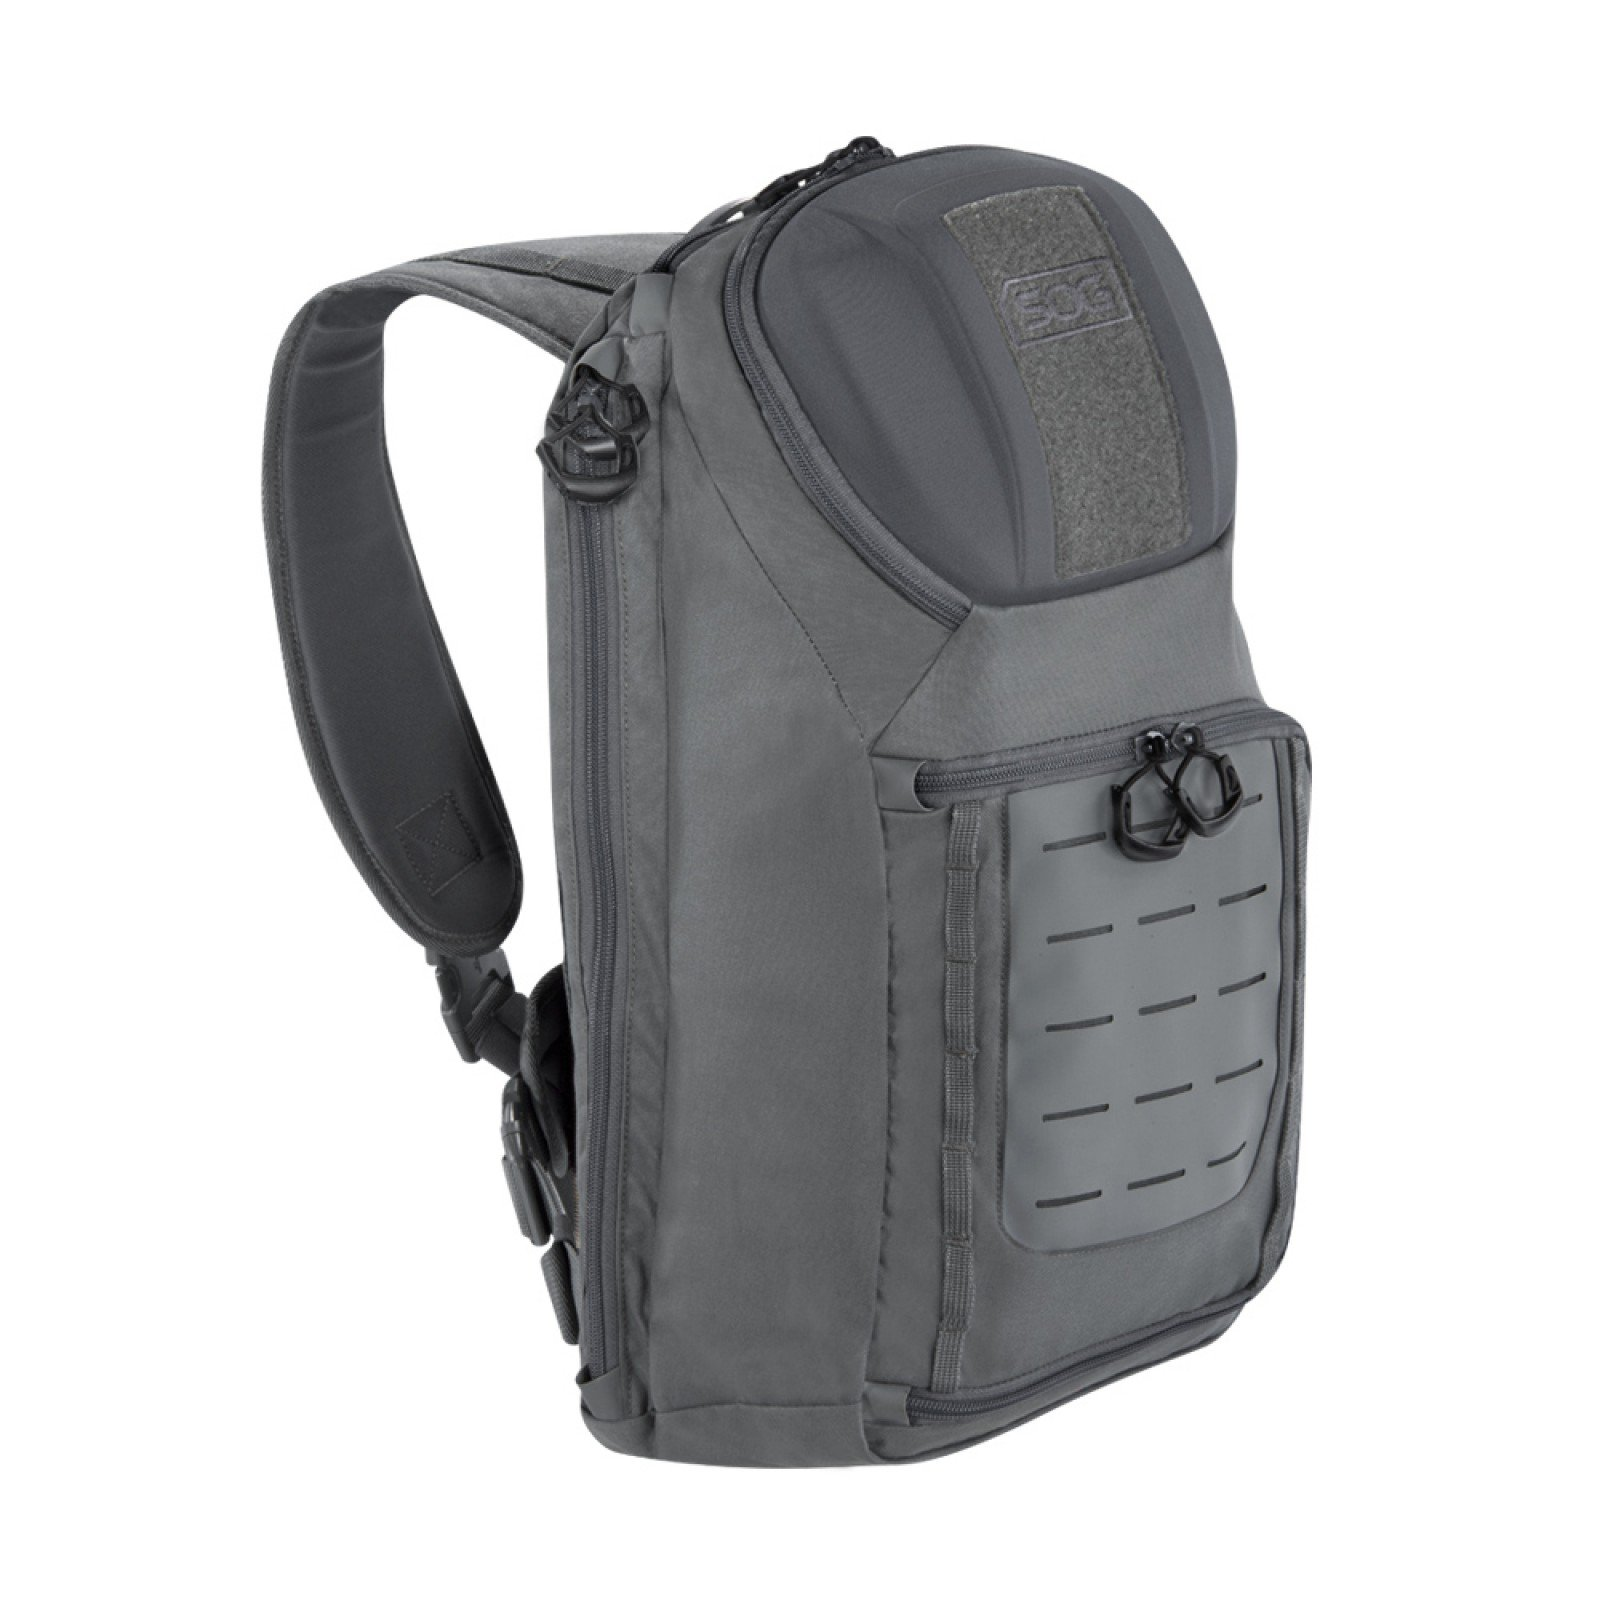 SOG Evac Sling Backpack CP1001G Grey, 18 L by SOG (Image #1)